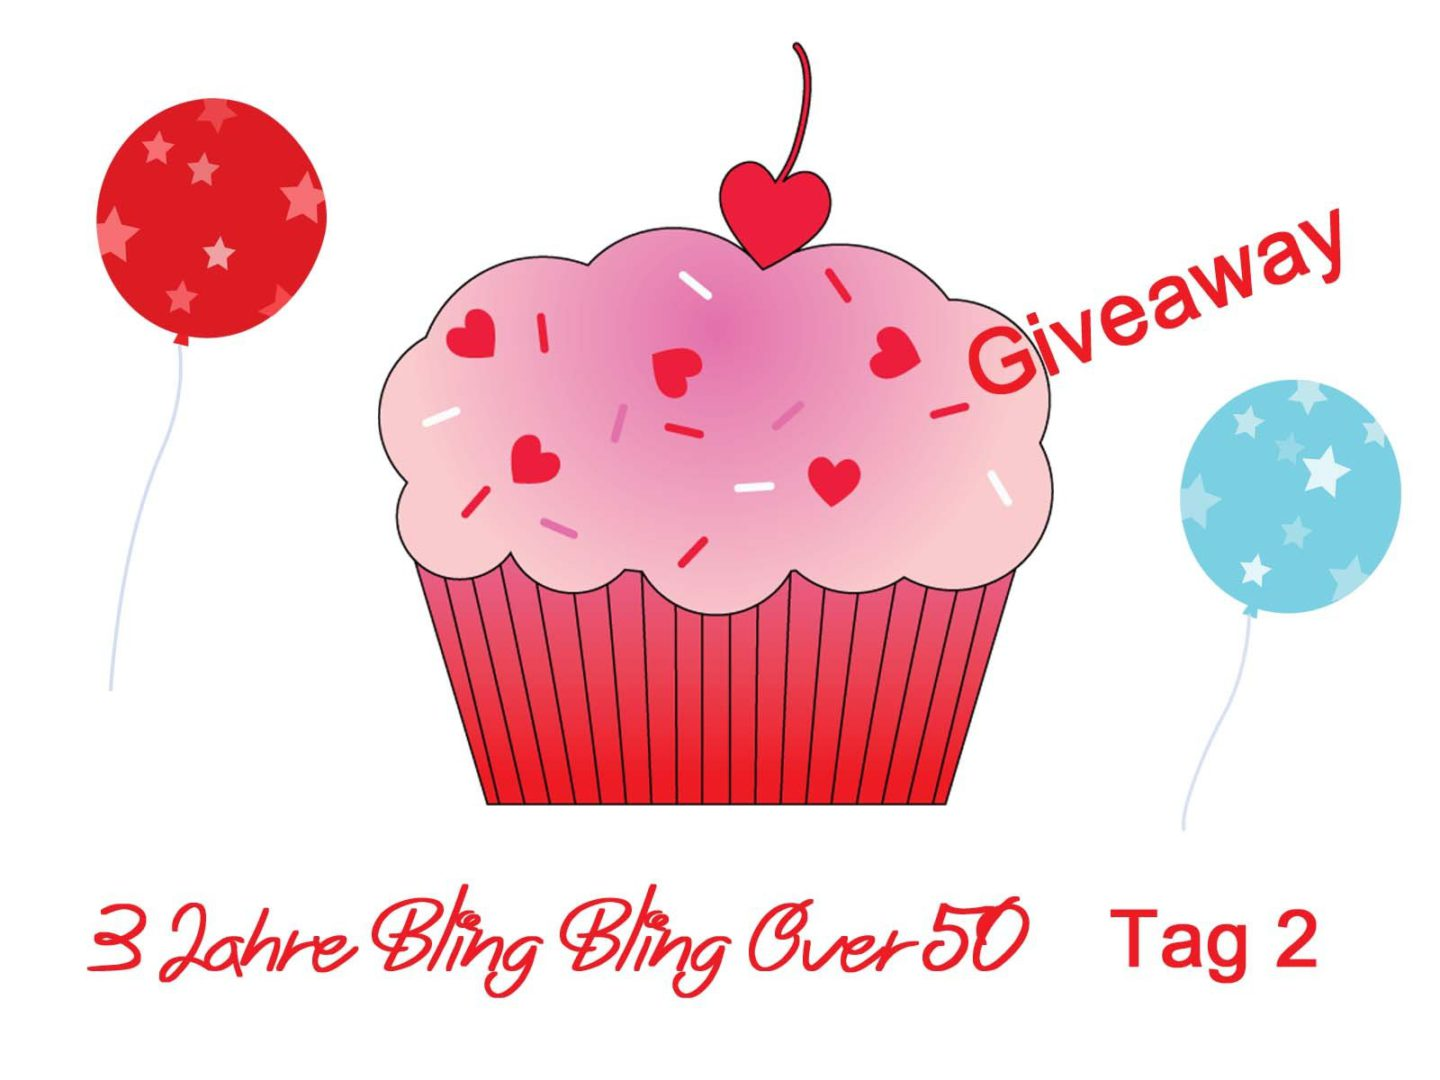 3 Jahre Bling Bling Over 50 – Giveaway Tag 2